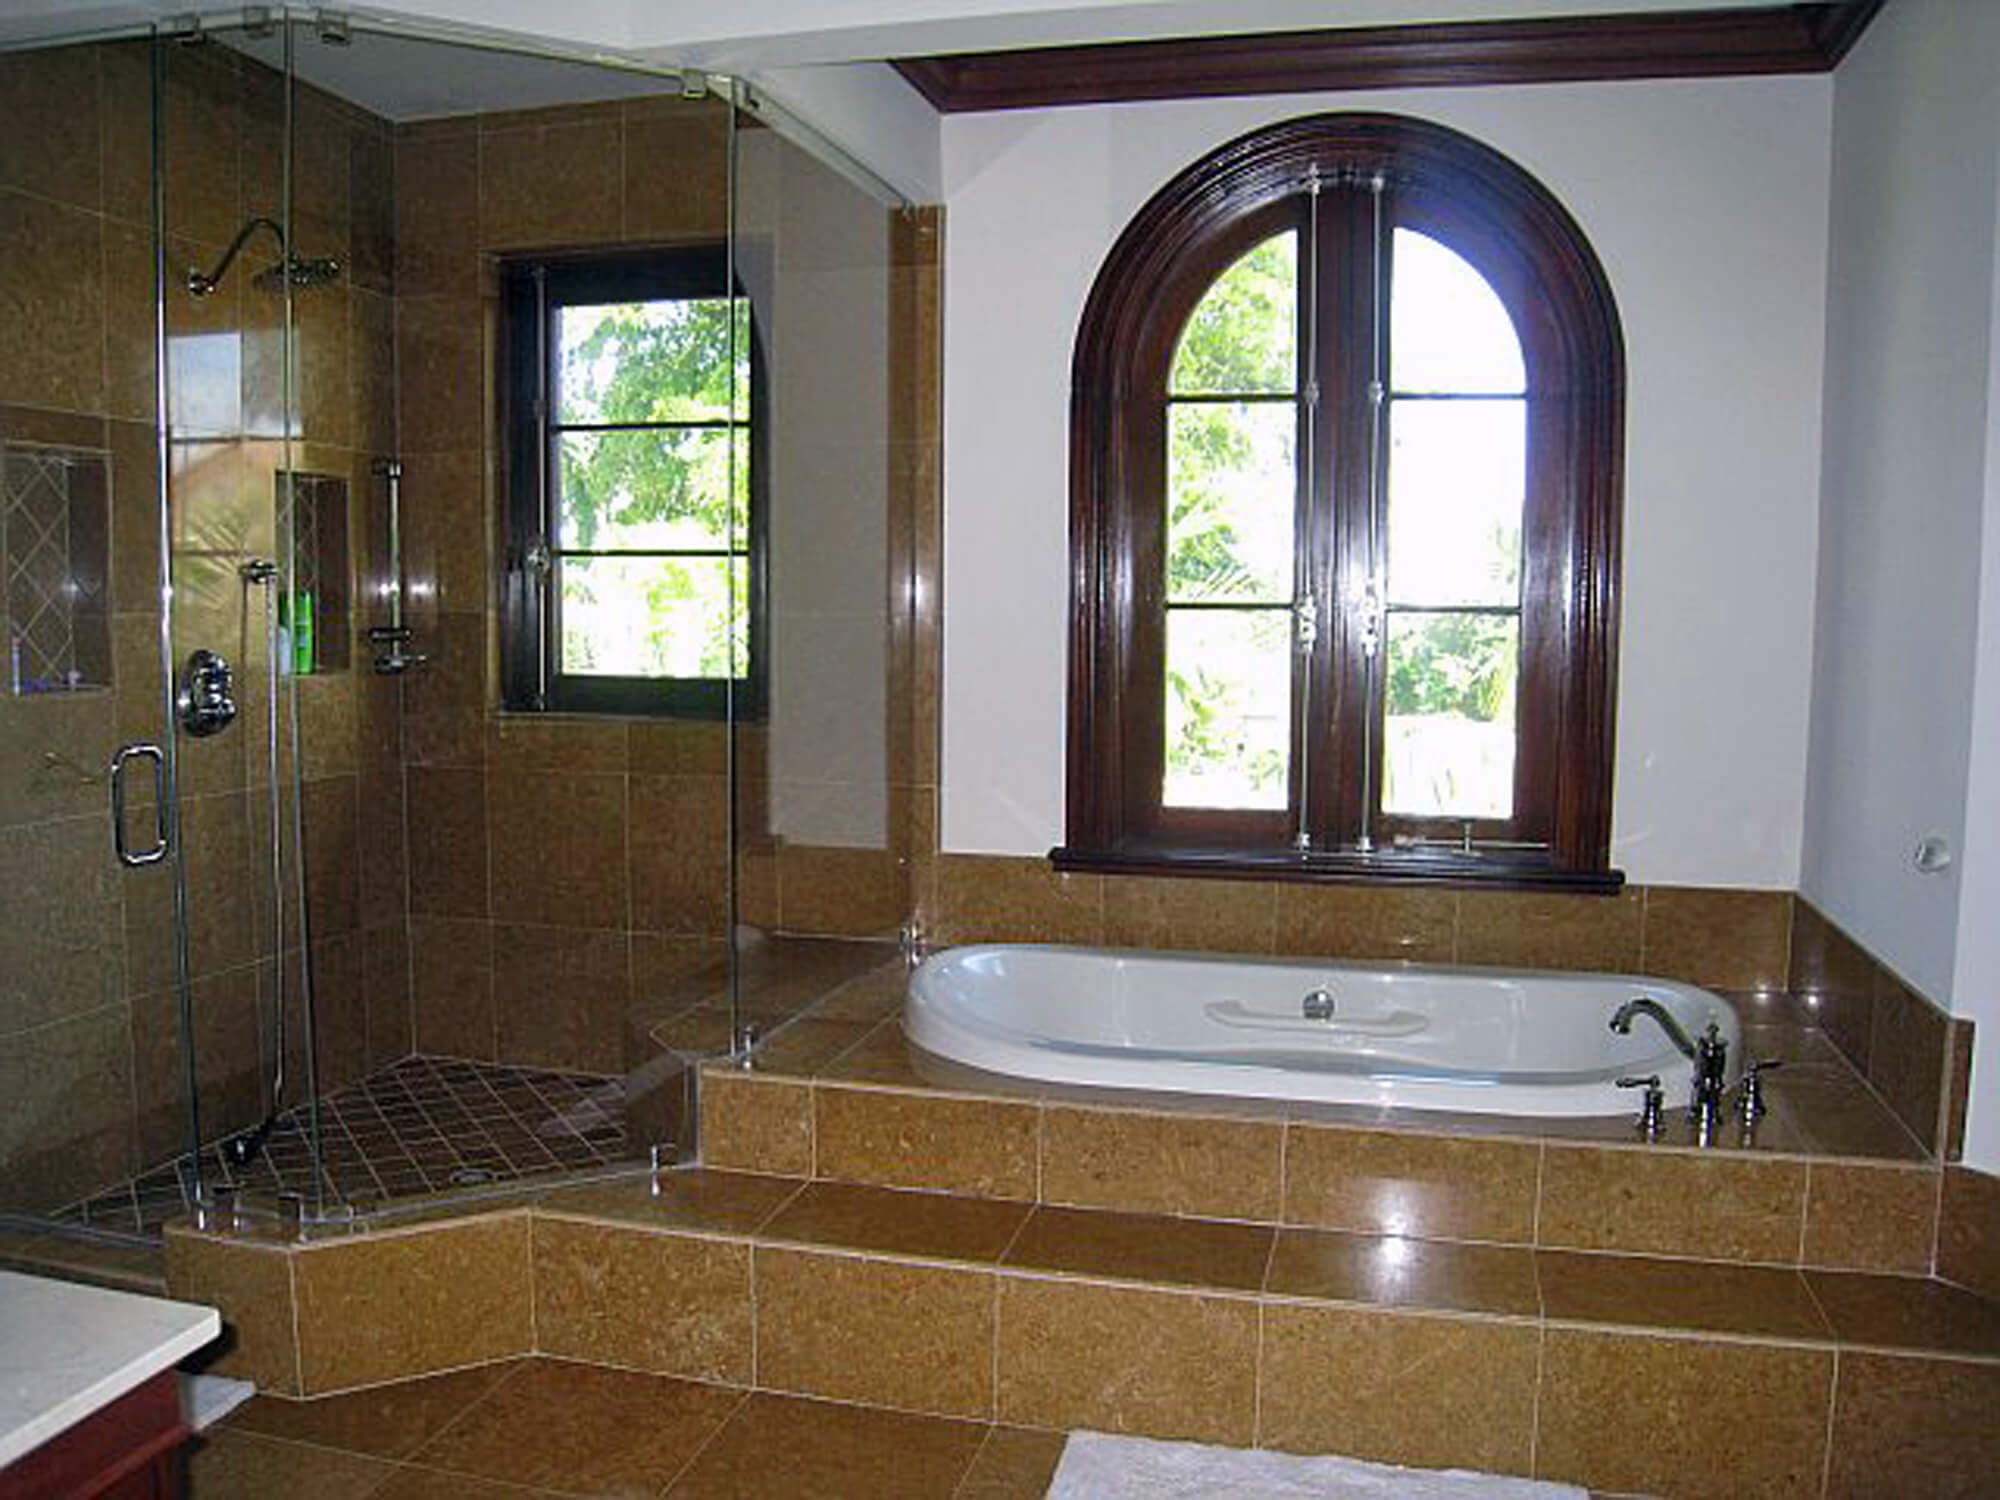 BAL HARBOUR CASEMENT WINDOWS.